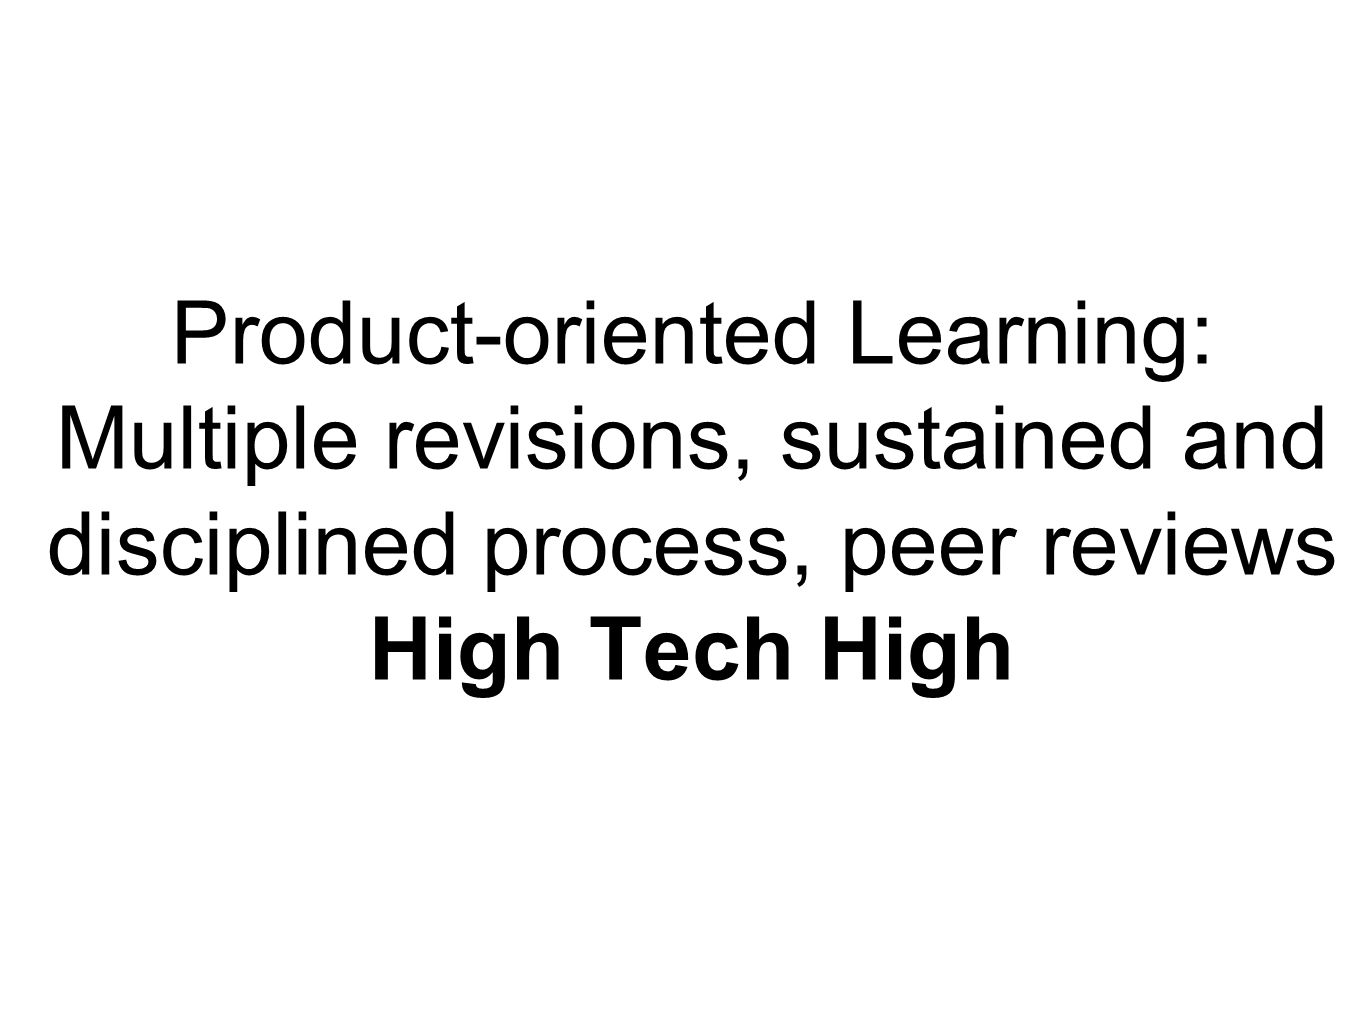 Product-oriented Learning: Multiple revisions, sustained and disciplined process, peer reviews High Tech High